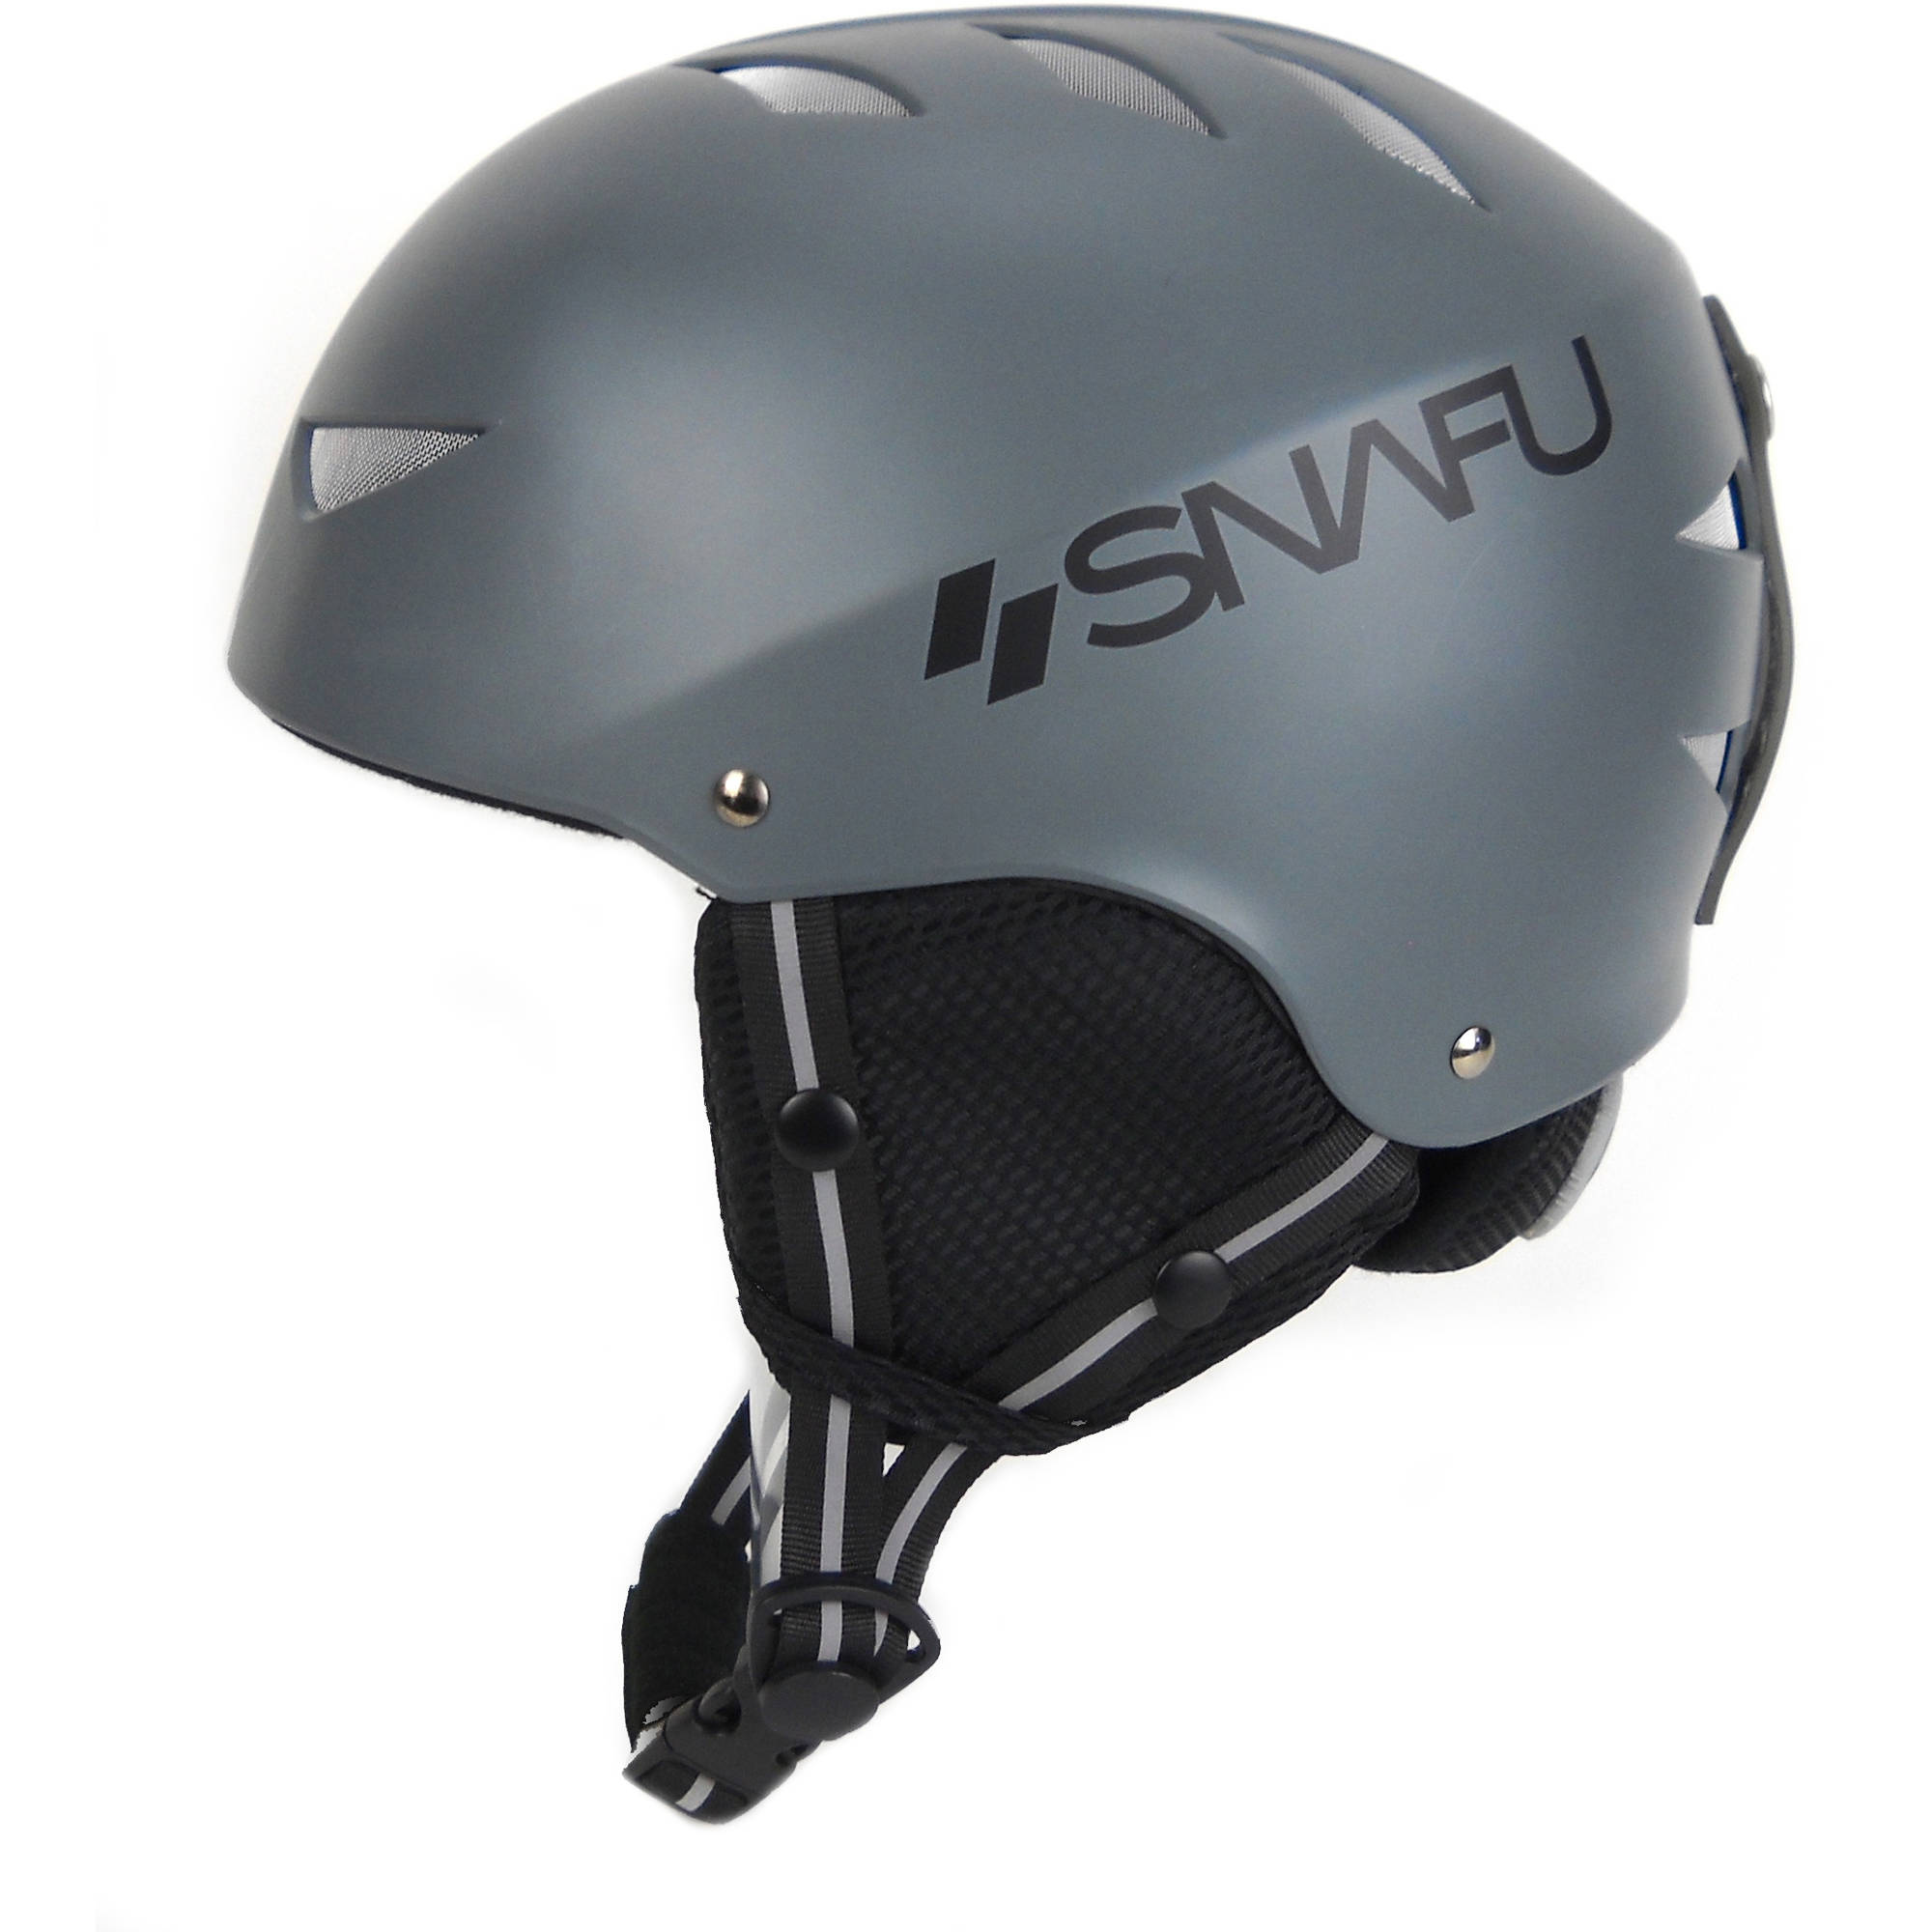 SNAFU Winter Sports Helmet, Matte Gray, M by